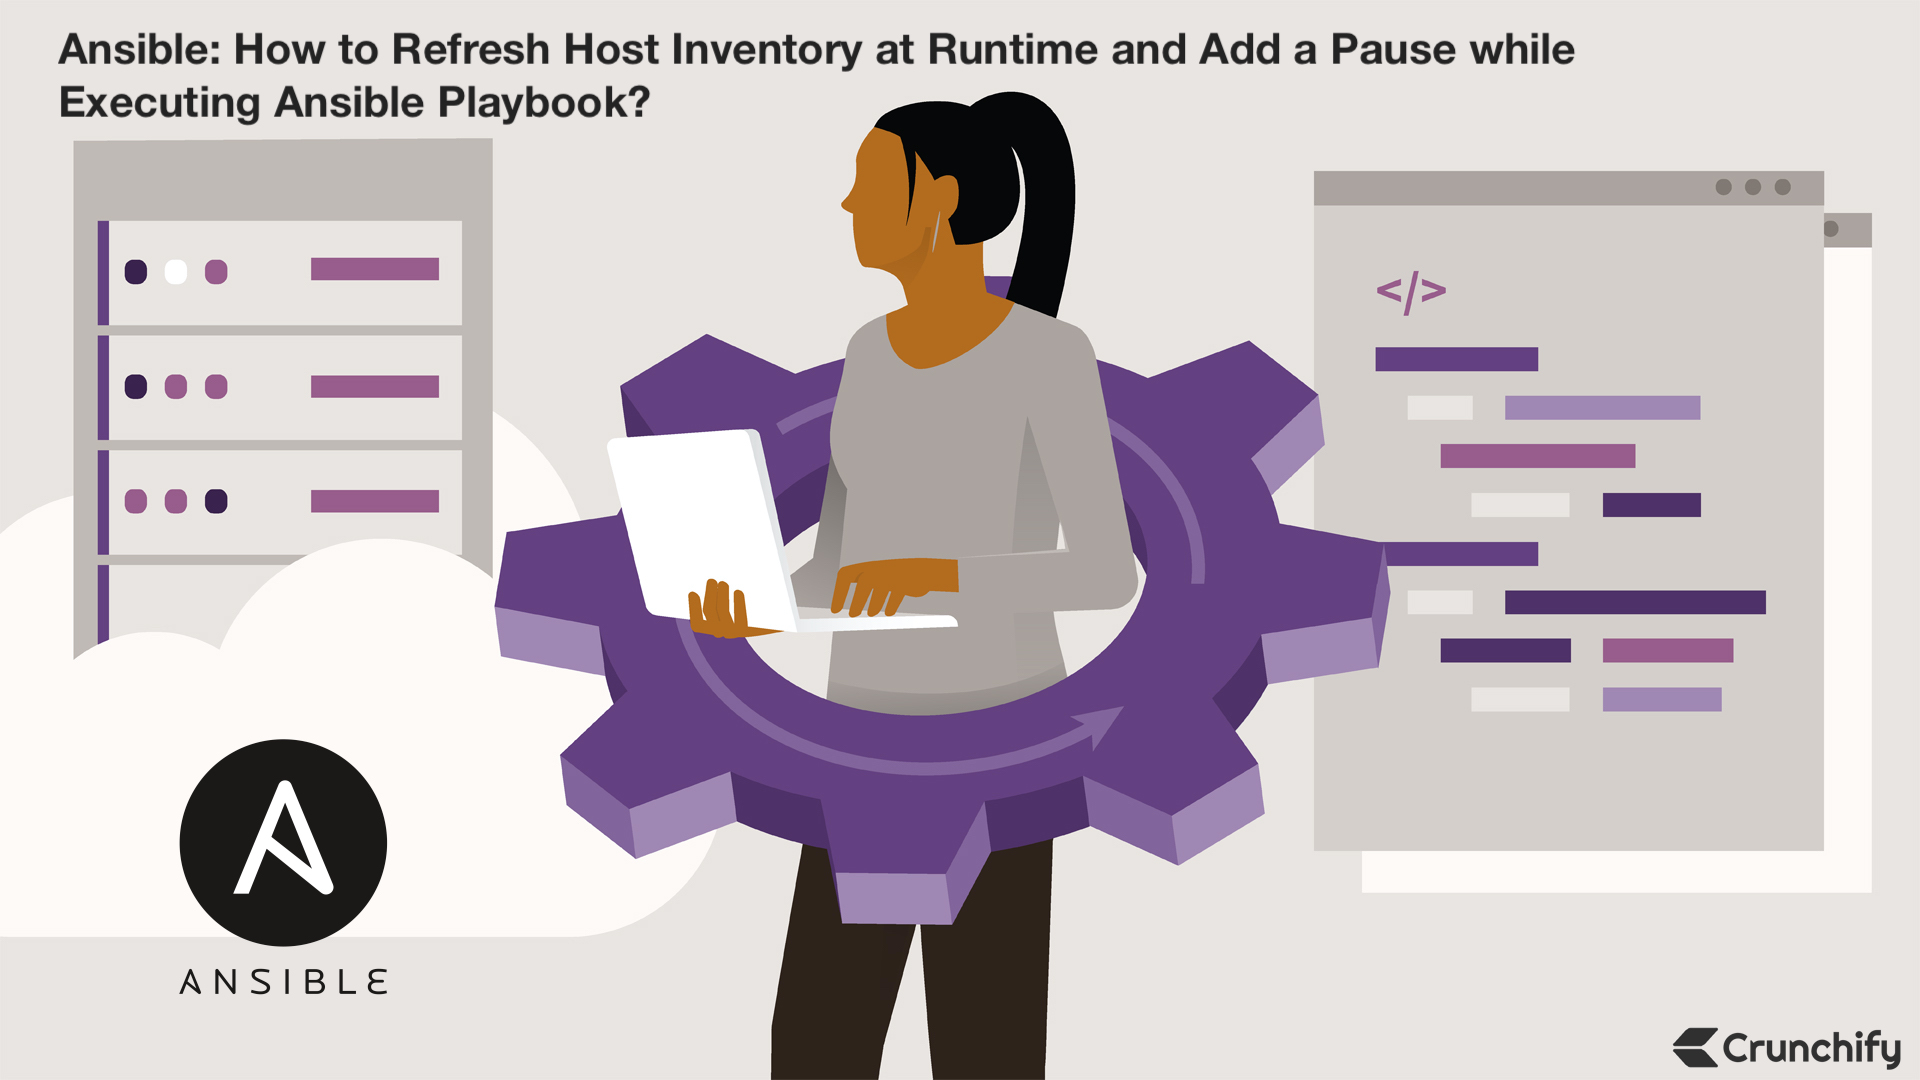 How to Refresh Host Inventory at Runtime and Add a Pause while Executing Playbook